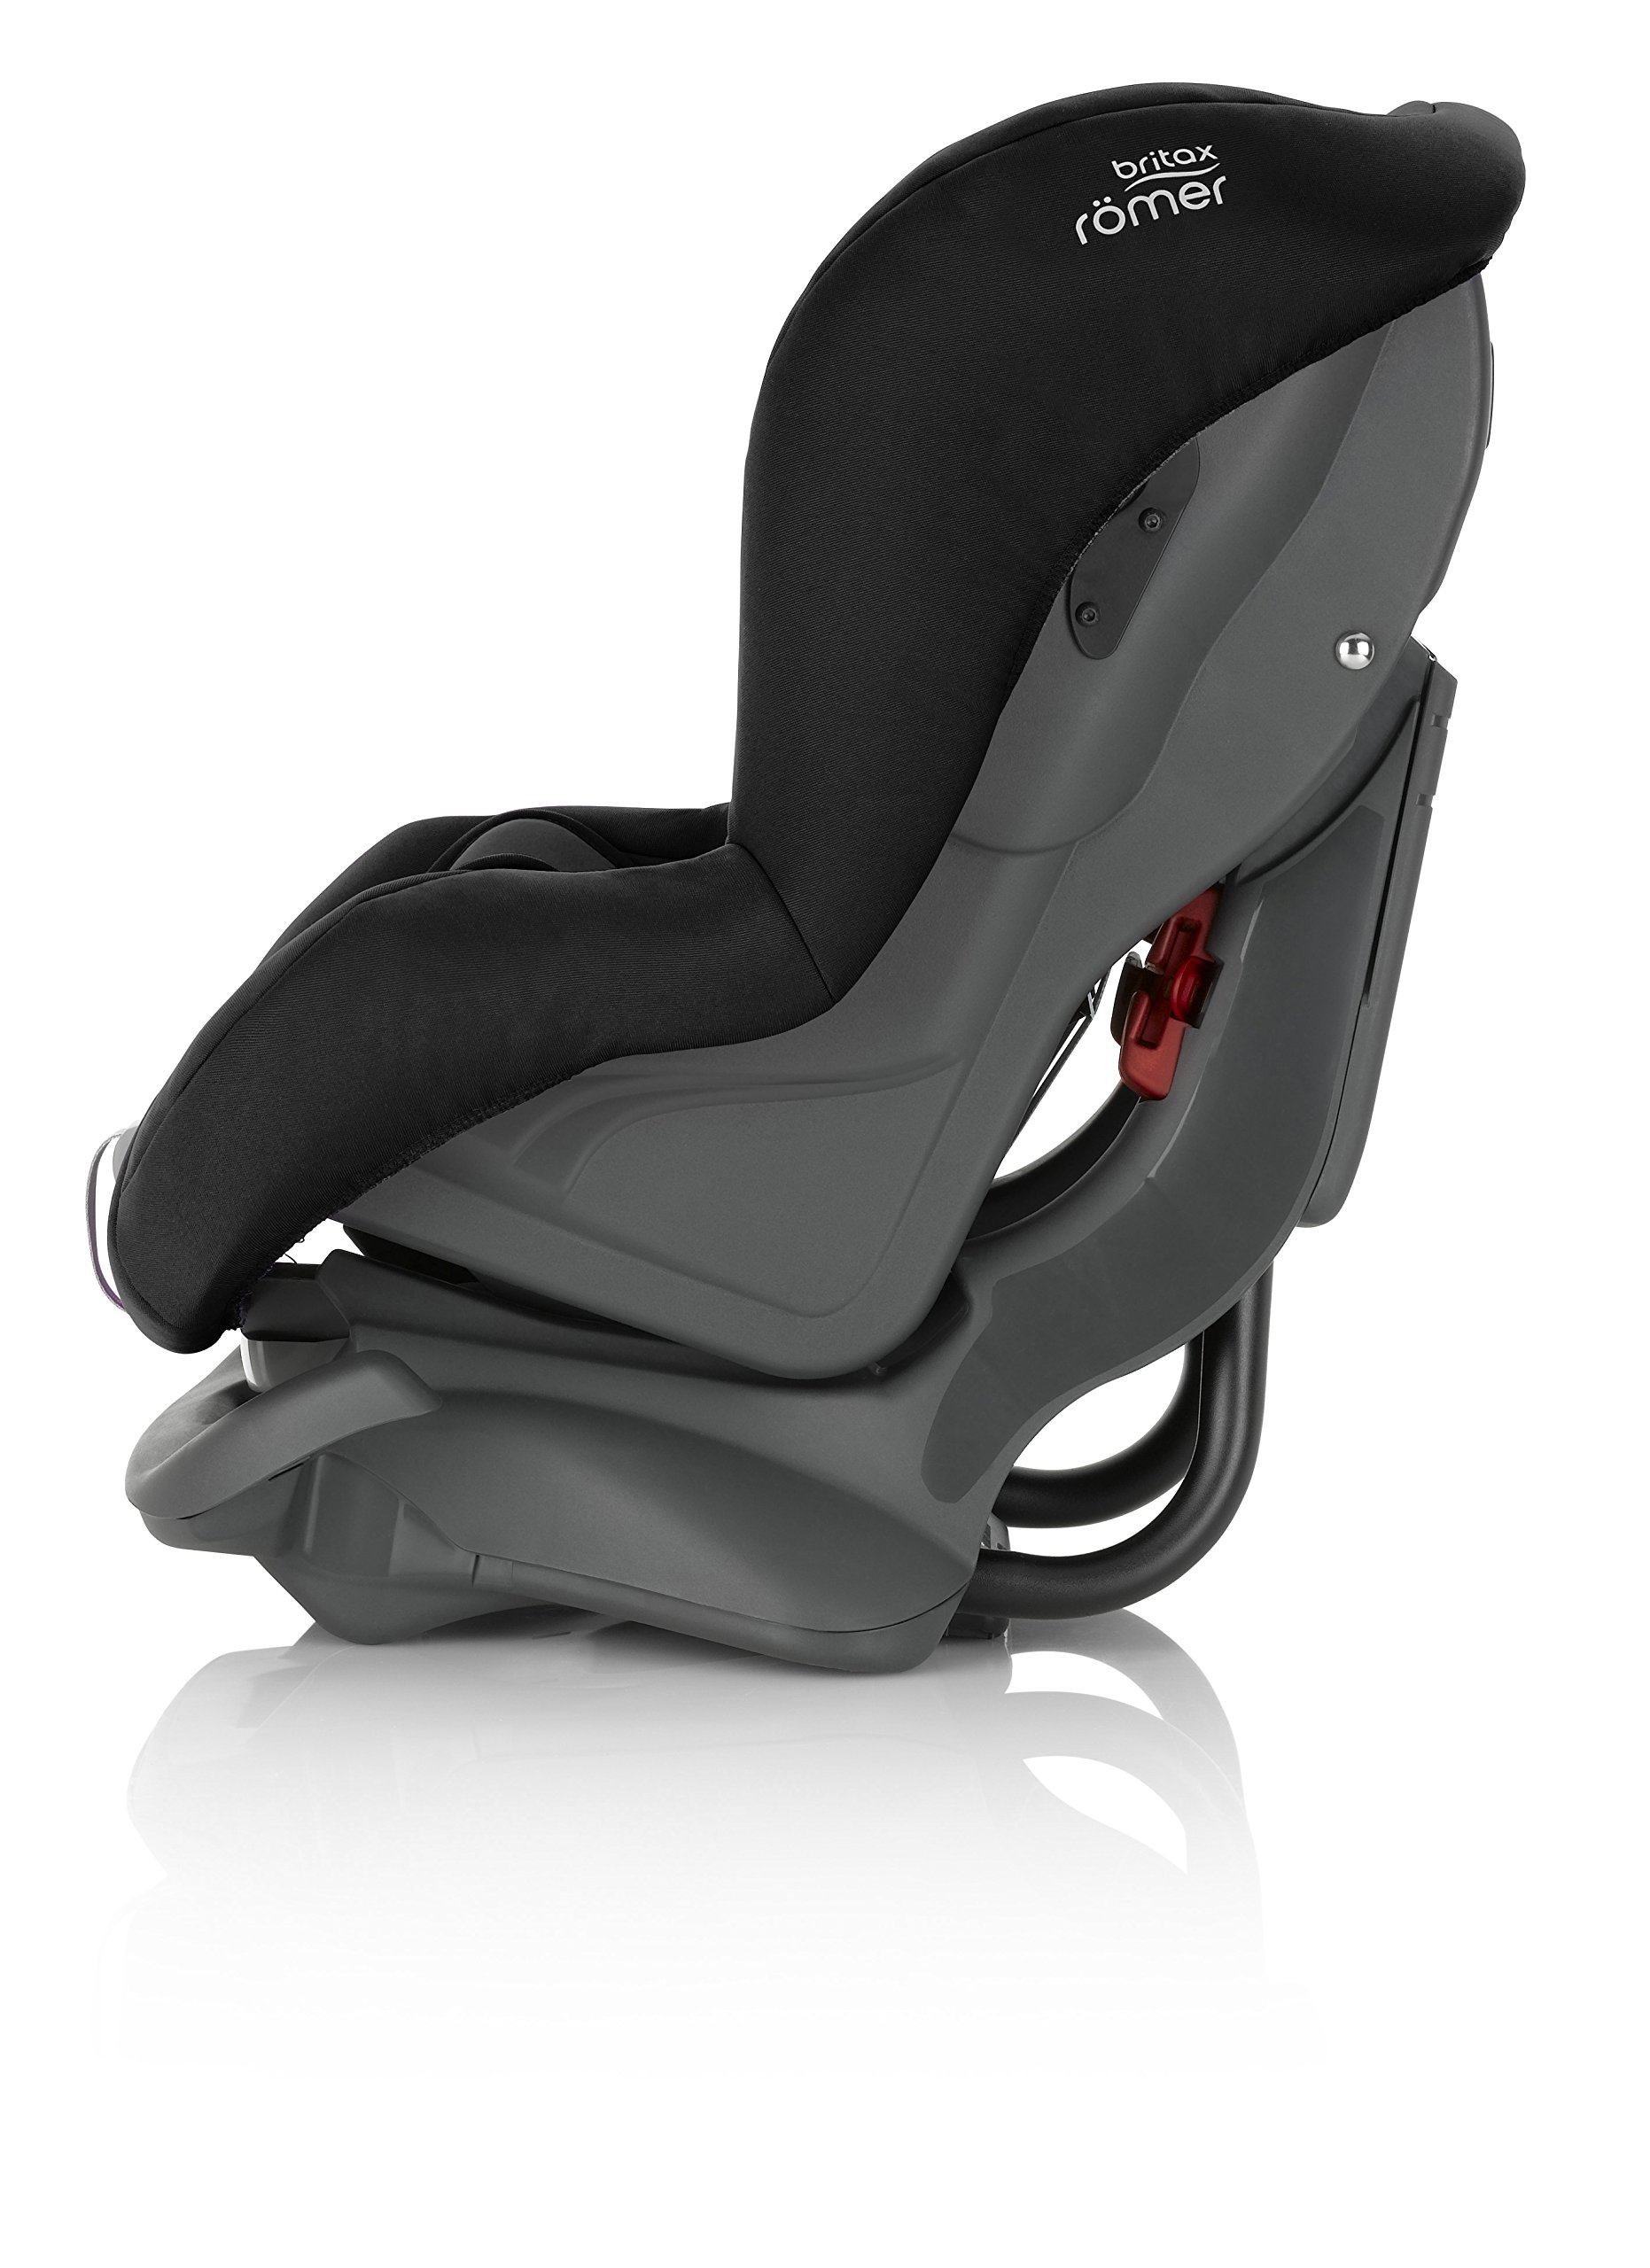 Britax Römer FIRST CLASS PLUS Group 0+/1 (Birth-18kg) Car Seat - Cosmos Black  Extended recline position when rearward facing - the safest way to travel Reassurance built-in - CLICK & SAFE harness tensioning confirmation Superior protection - side impact protection Plus performance chest pads and pitch control system 3